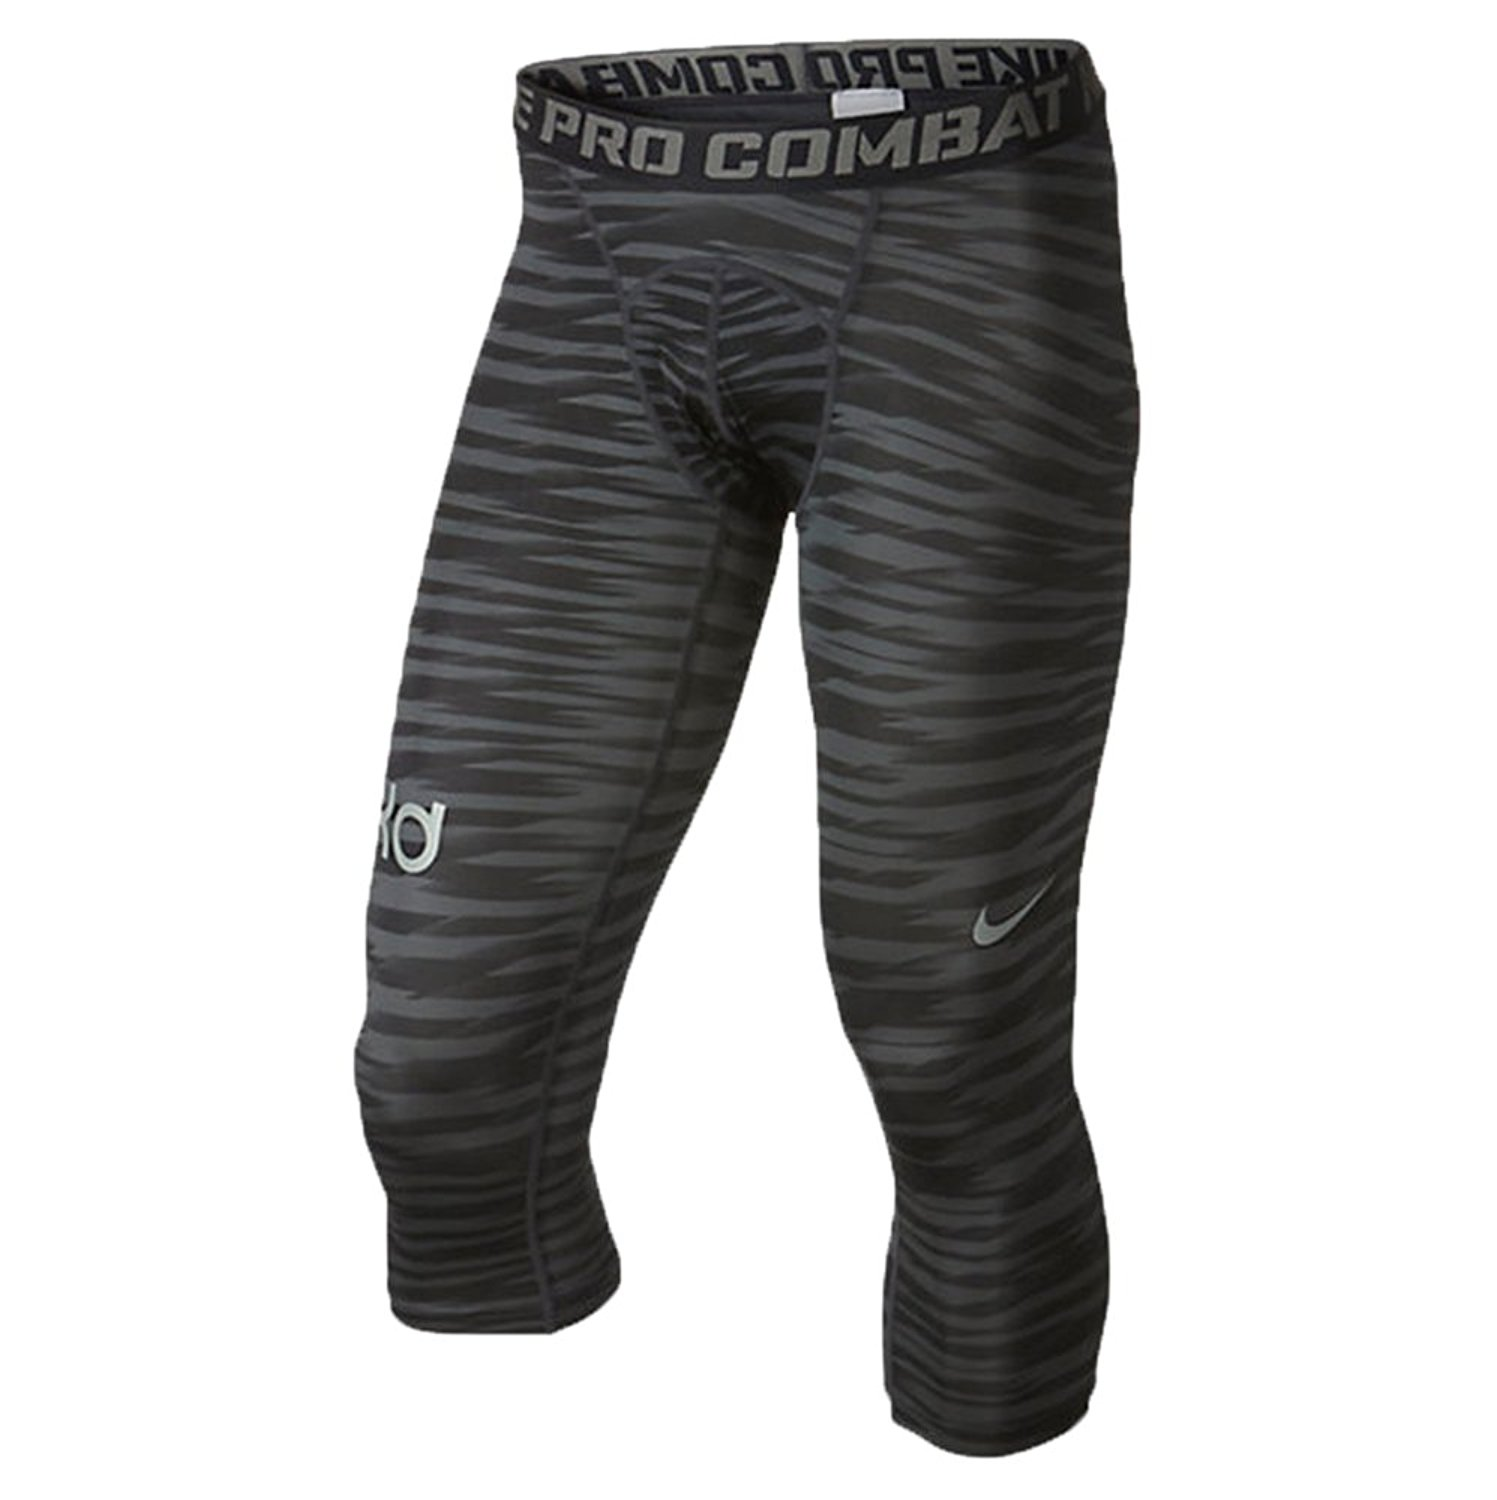 ac014571e1 Get Quotations · Nike Men's KD Pro 3/4 Basketball Compression Tights  (Medium, Anthracite/Black